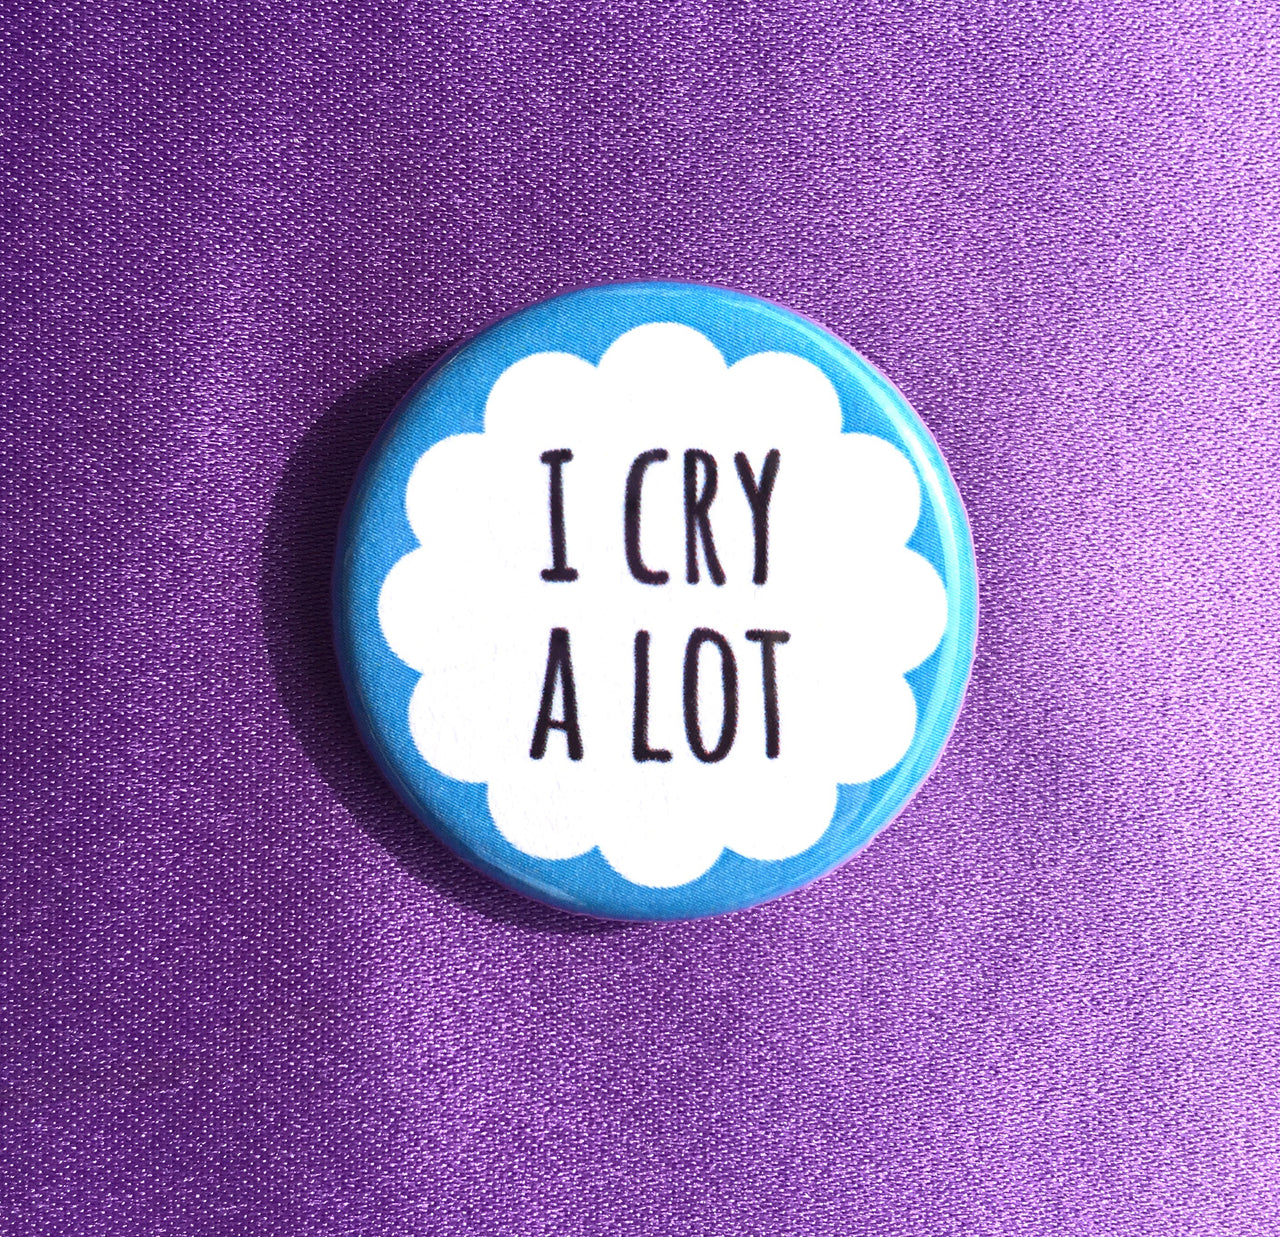 I cry a lot - Radical Buttons